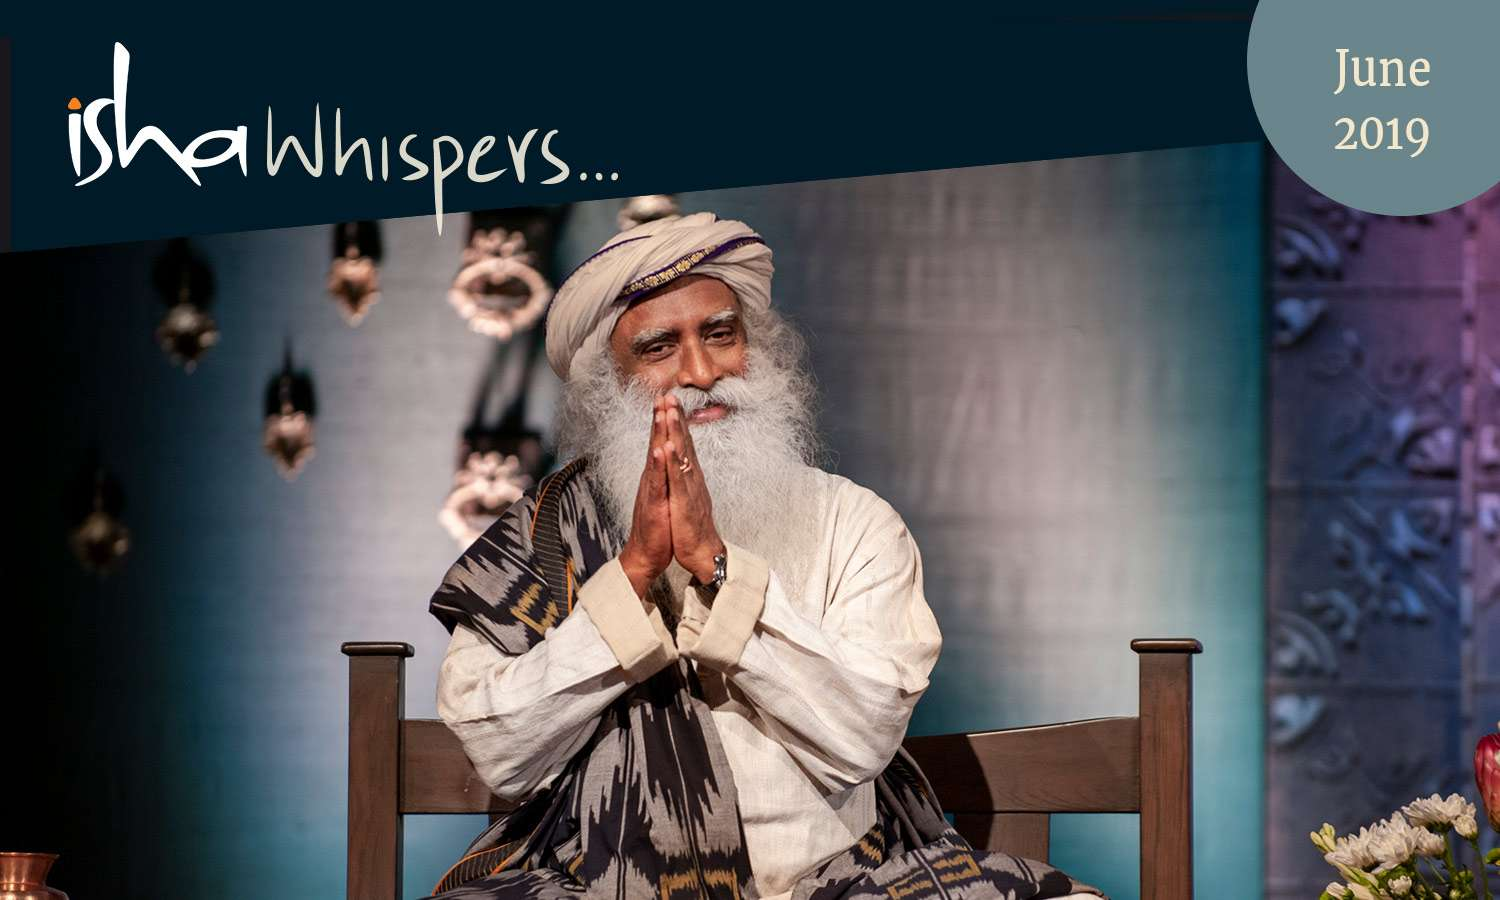 Isha Whispers...June 2019